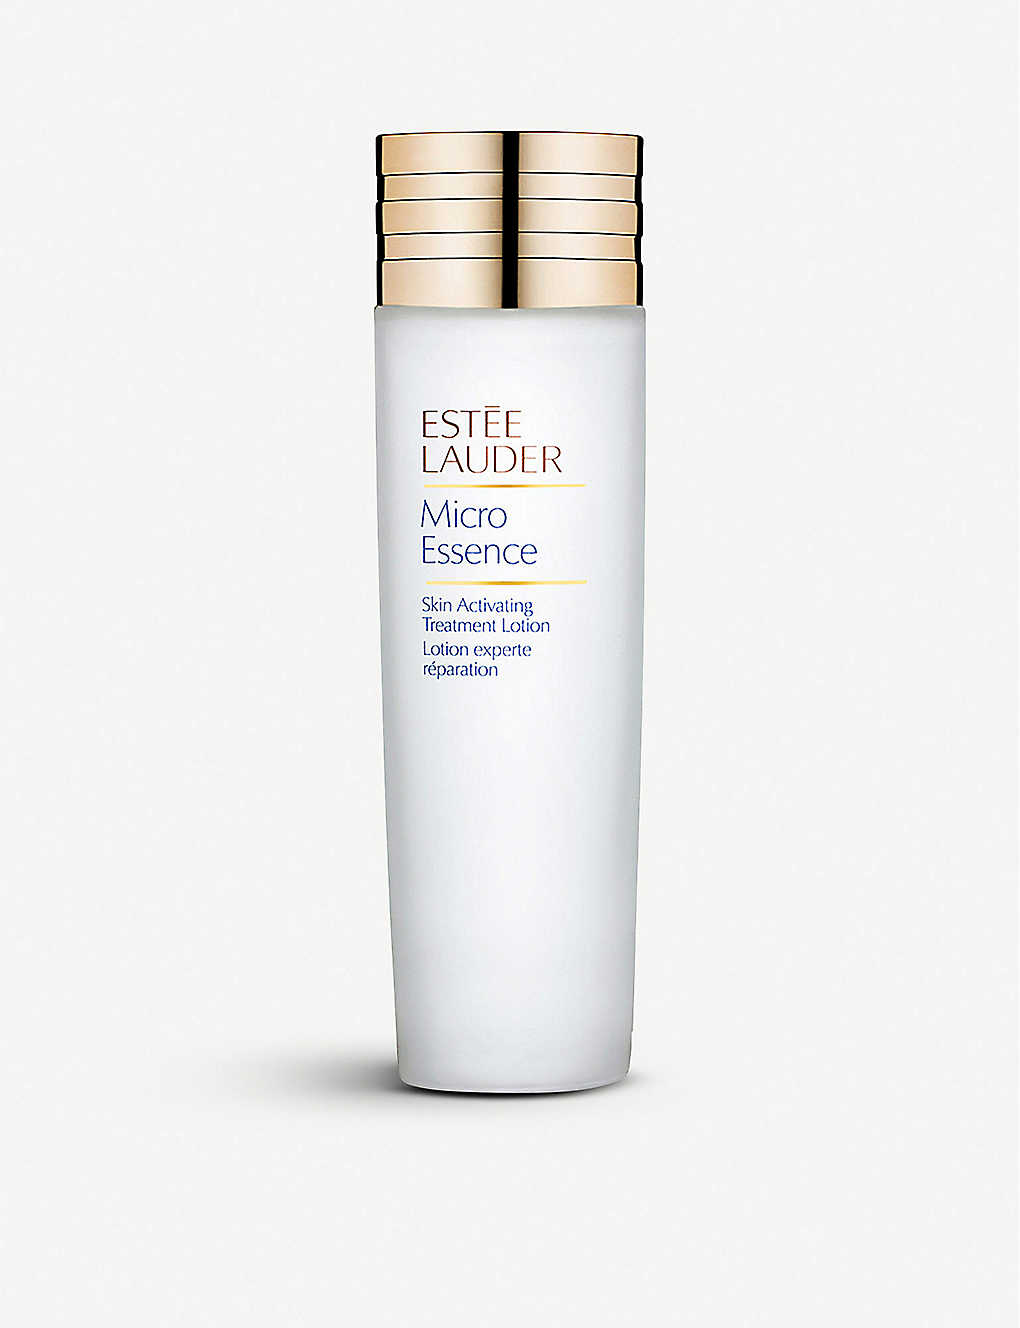 ESTEE LAUDER: Micro Essence treatment lotion 75ml